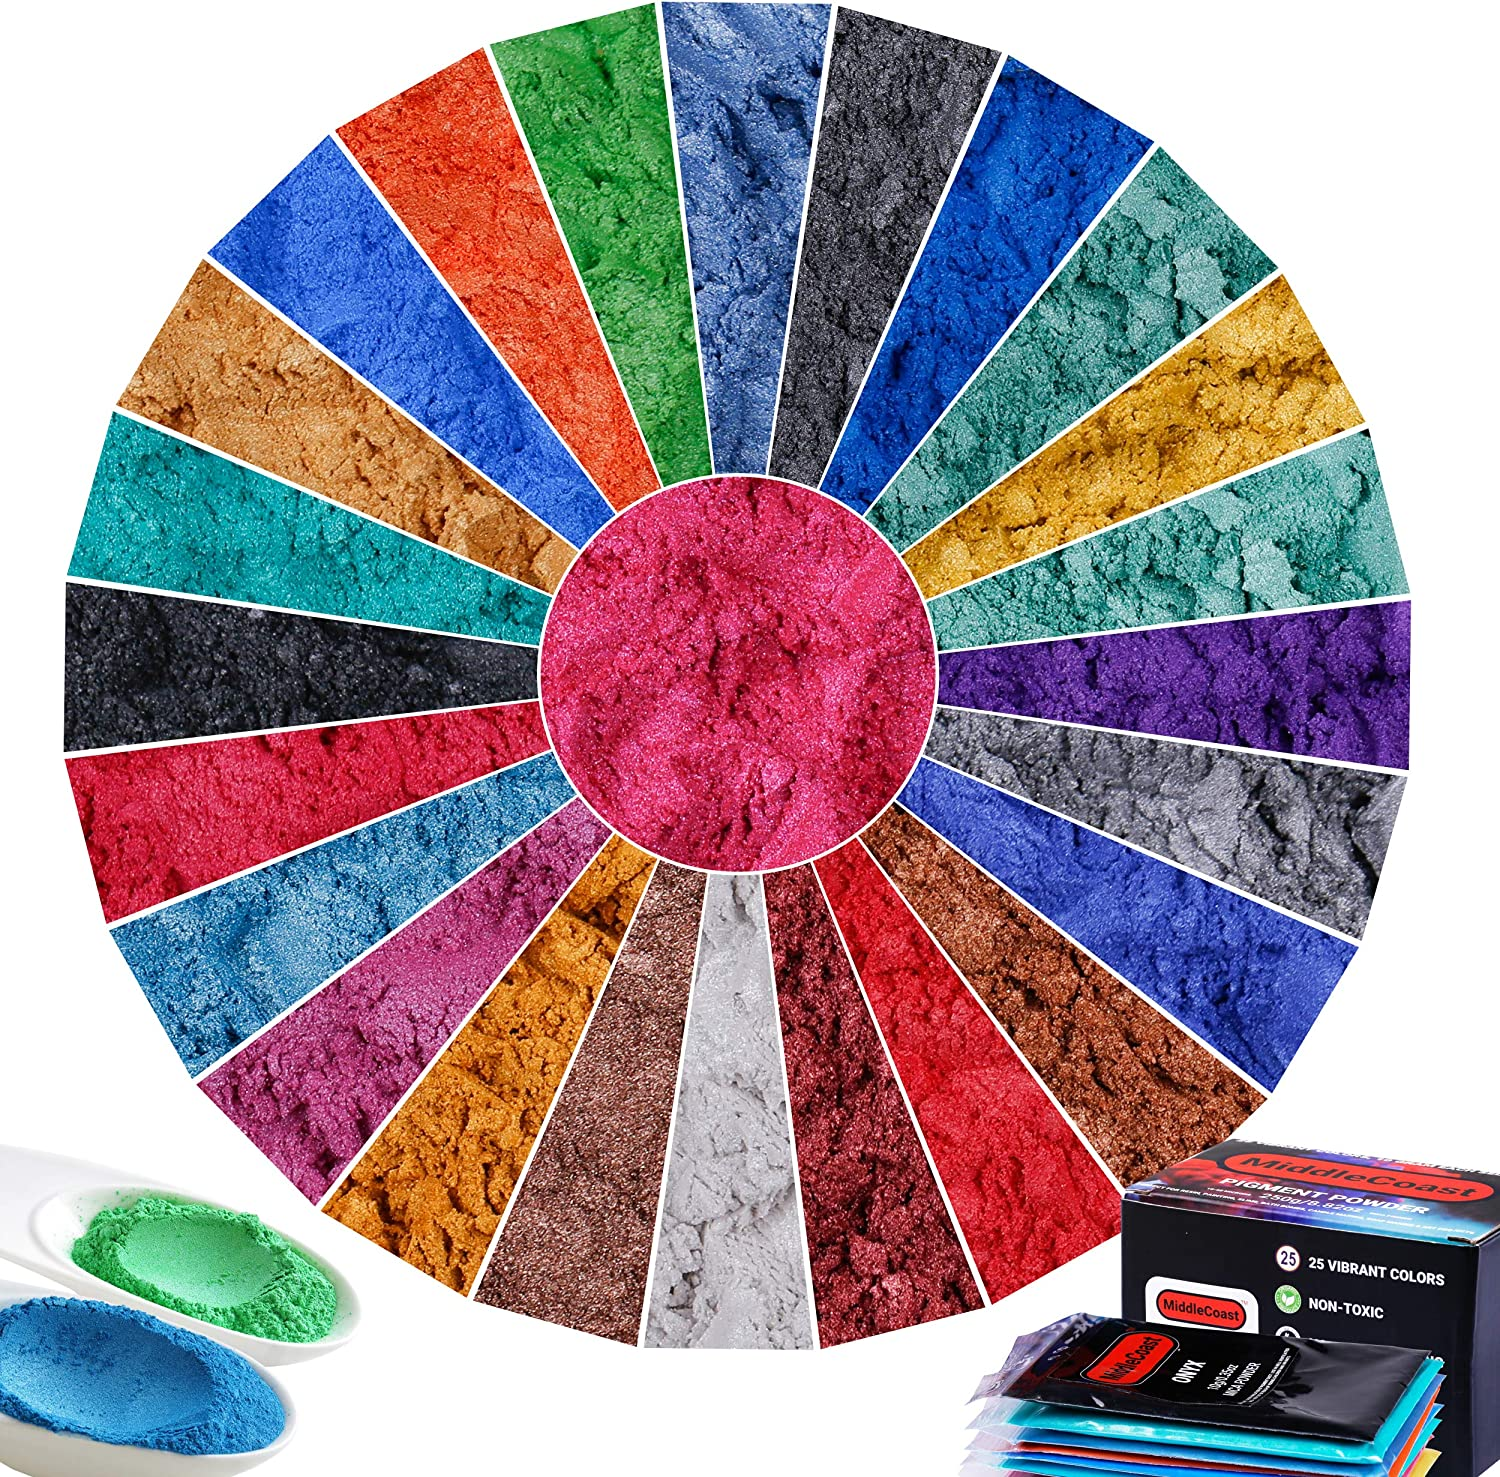 Mica Powder for Epoxy - 25 Colors (10g Each), 250g/8.82oz Vibrant Pigment Powder for Lip Gloss, Resin Dye, Soap Making and Other DIY Activities